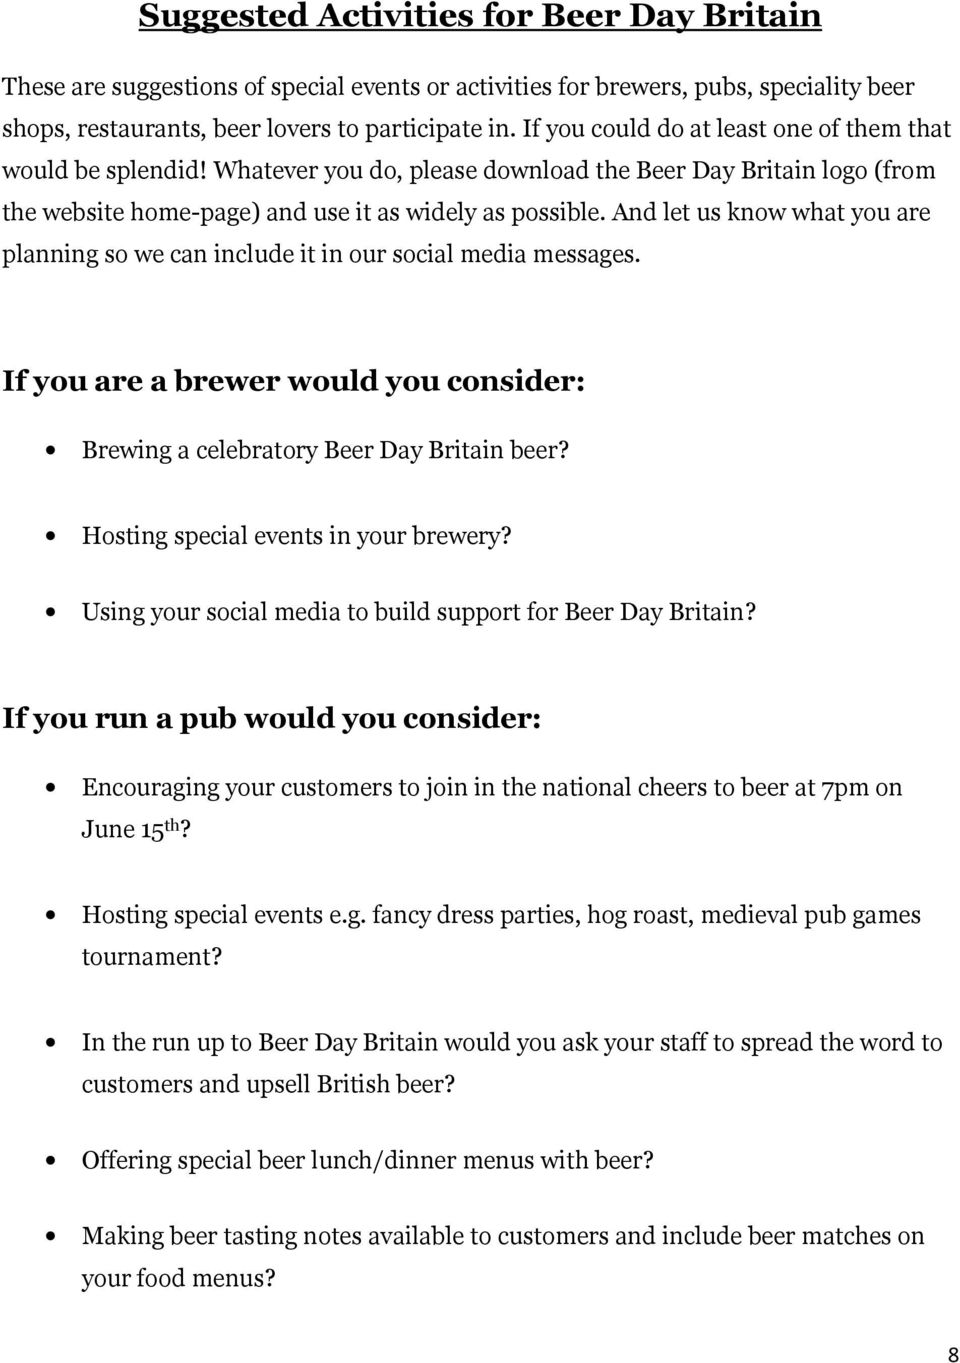 And let us know what you are planning so we can include it in our social media messages. If you are a brewer would you consider: Brewing a celebratory Beer Day Britain beer?